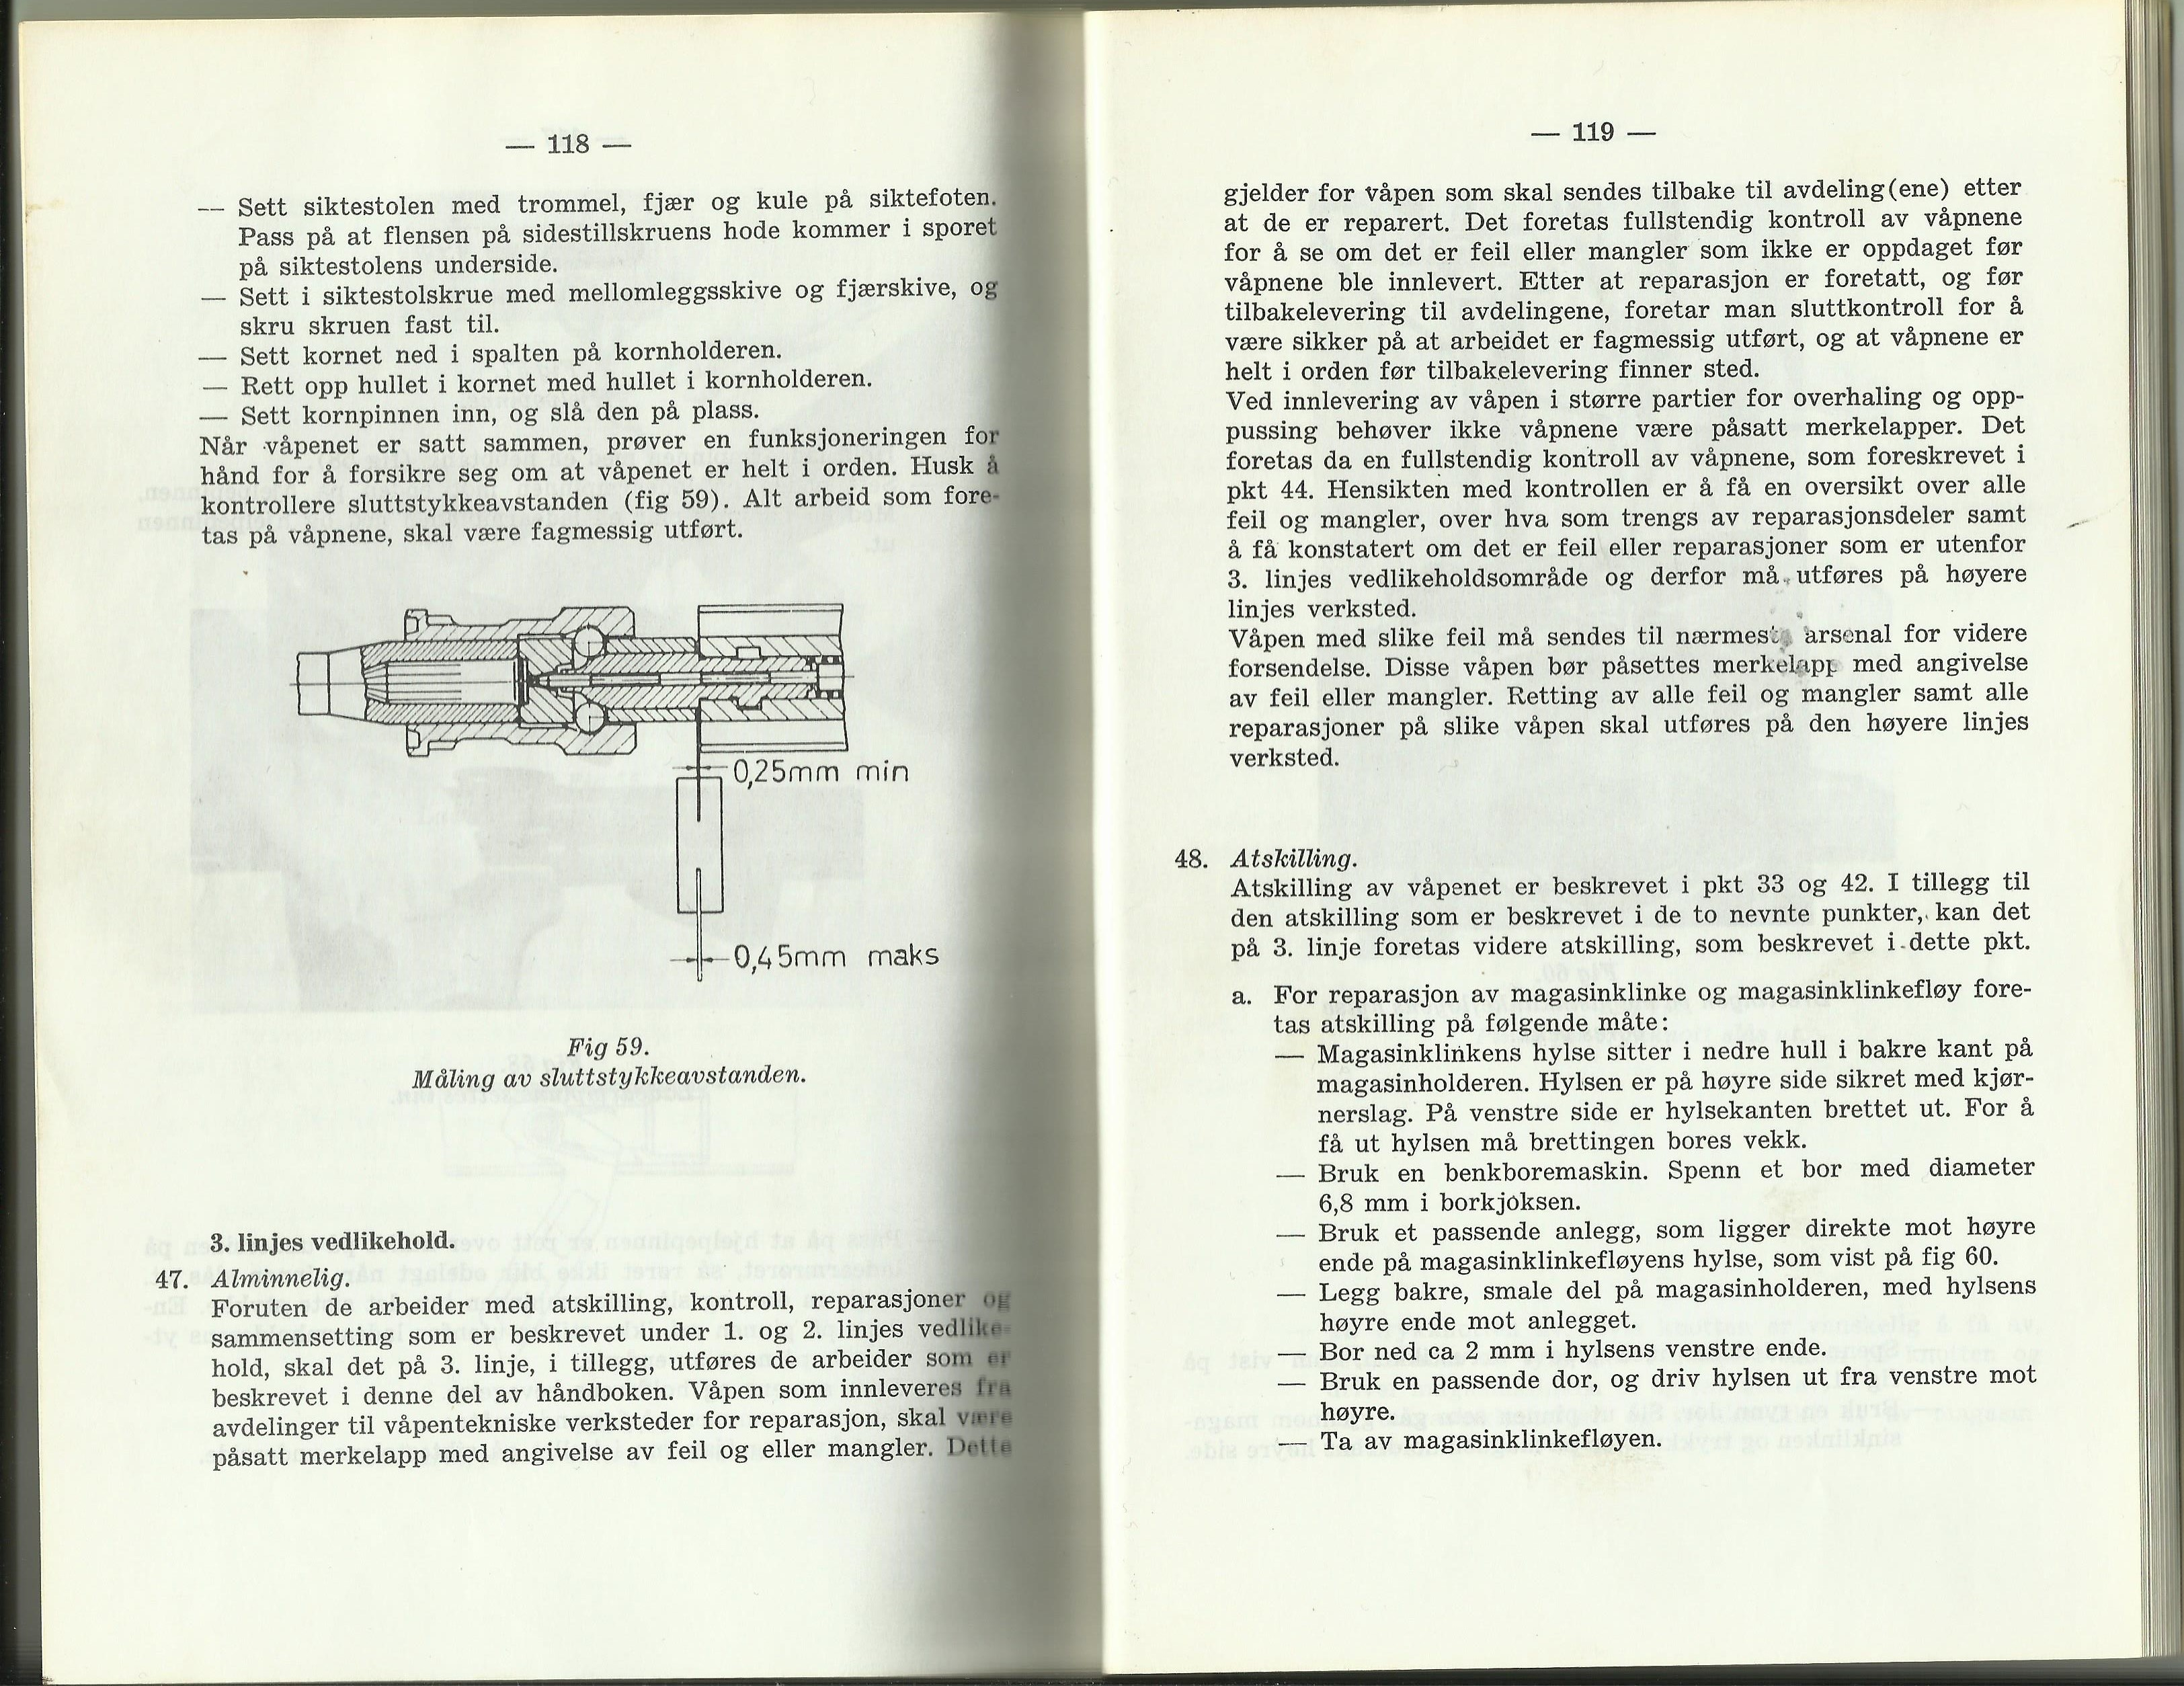 ./doc/reglement/AG3/AG3-TH-1968-7.jpg